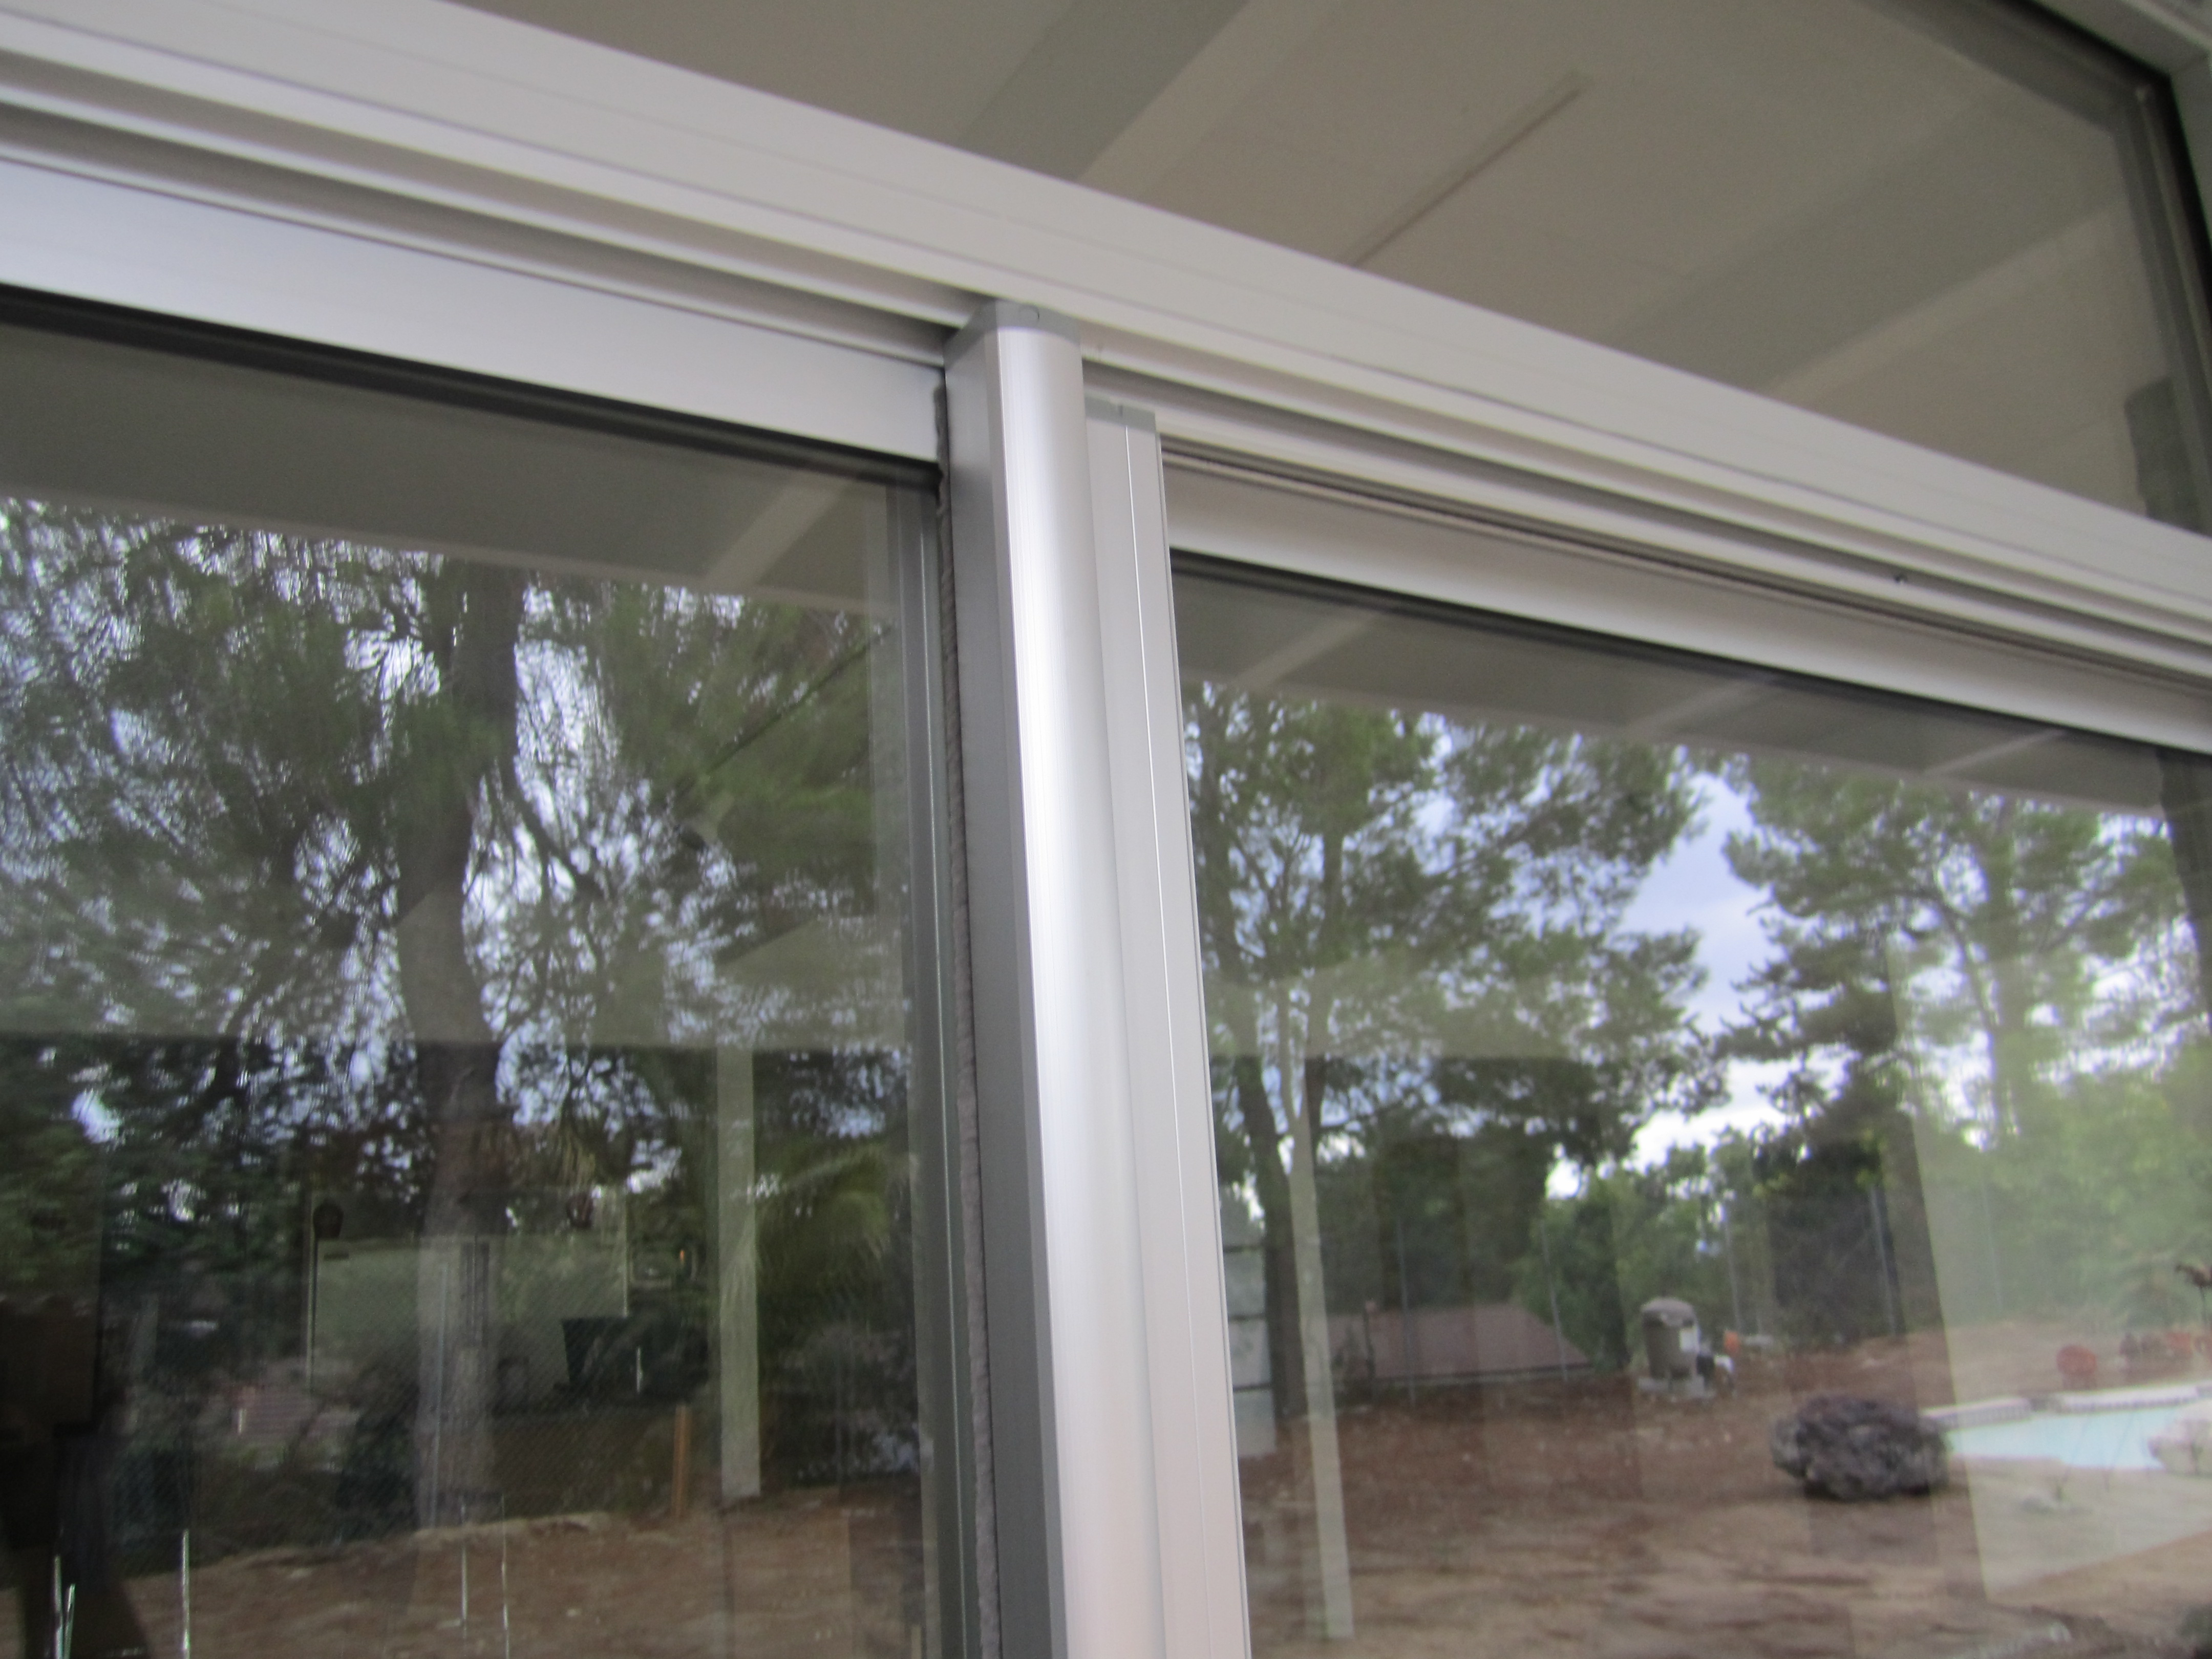 Clear Anodized Retractable Screen Door for a patio sliding screen